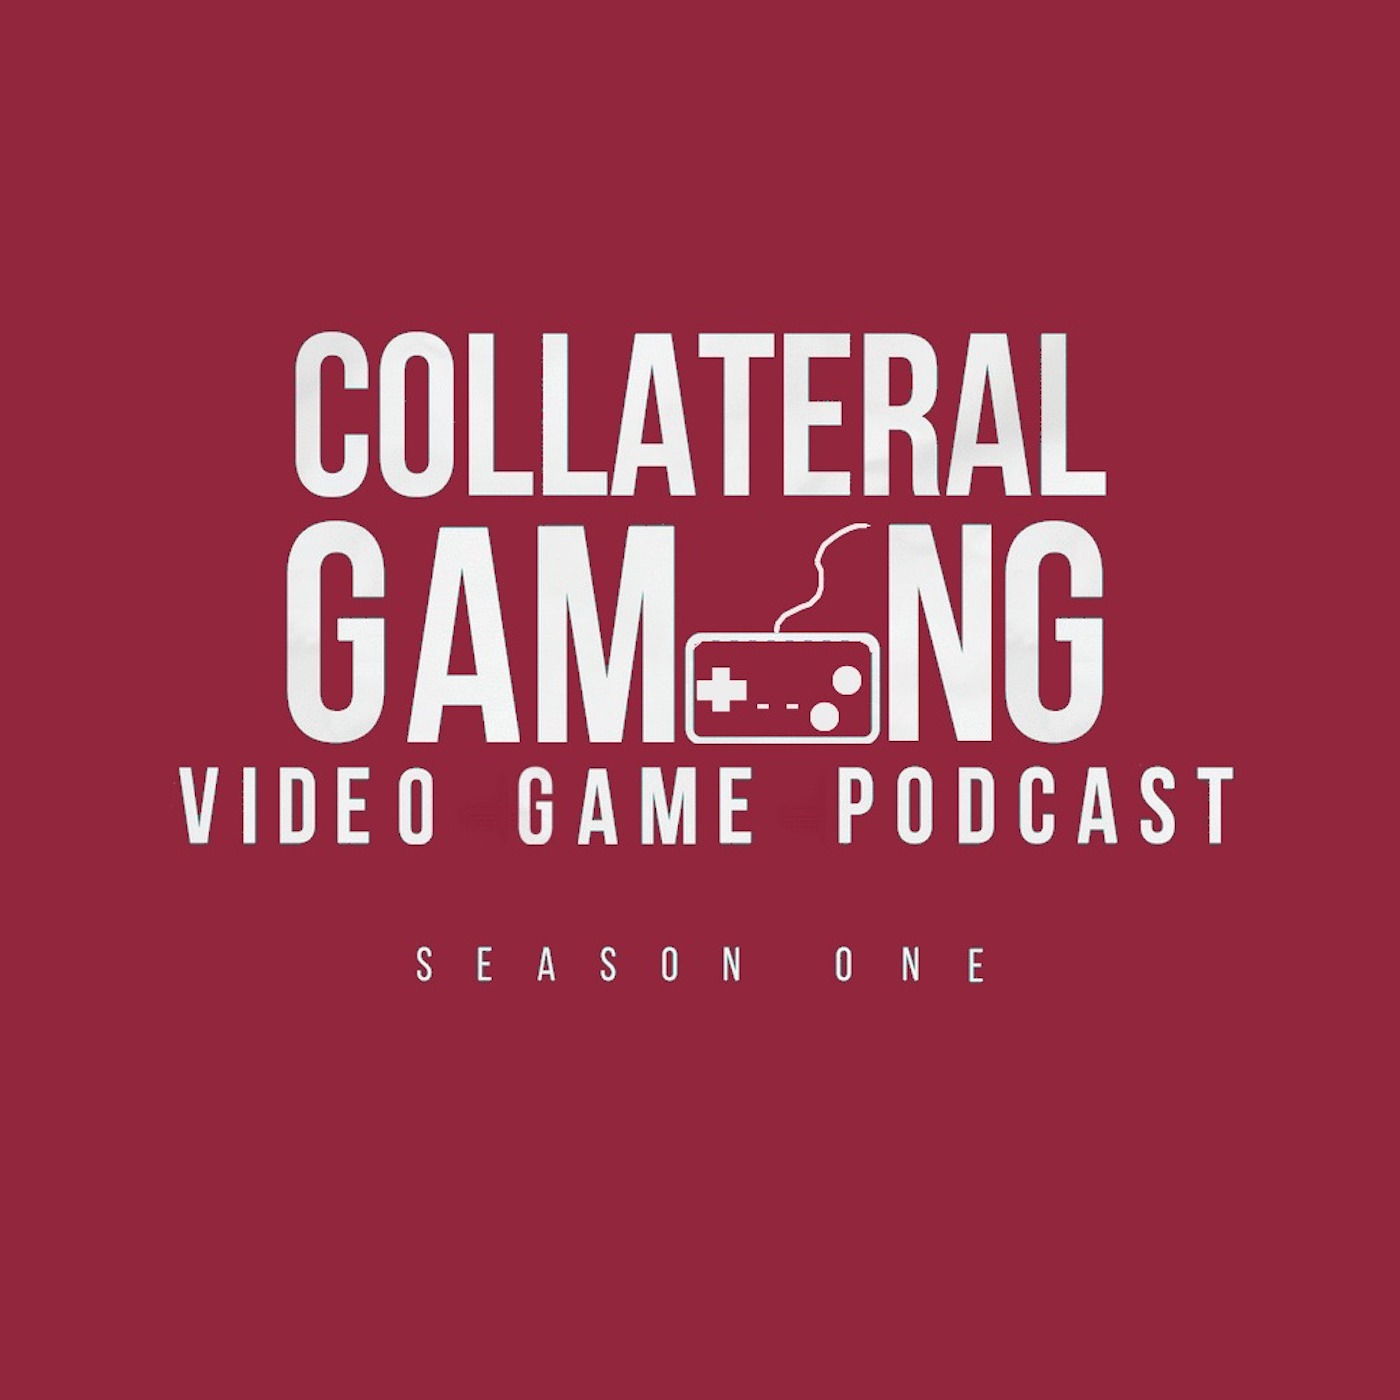 Collateral Gaming Video Game Podcast